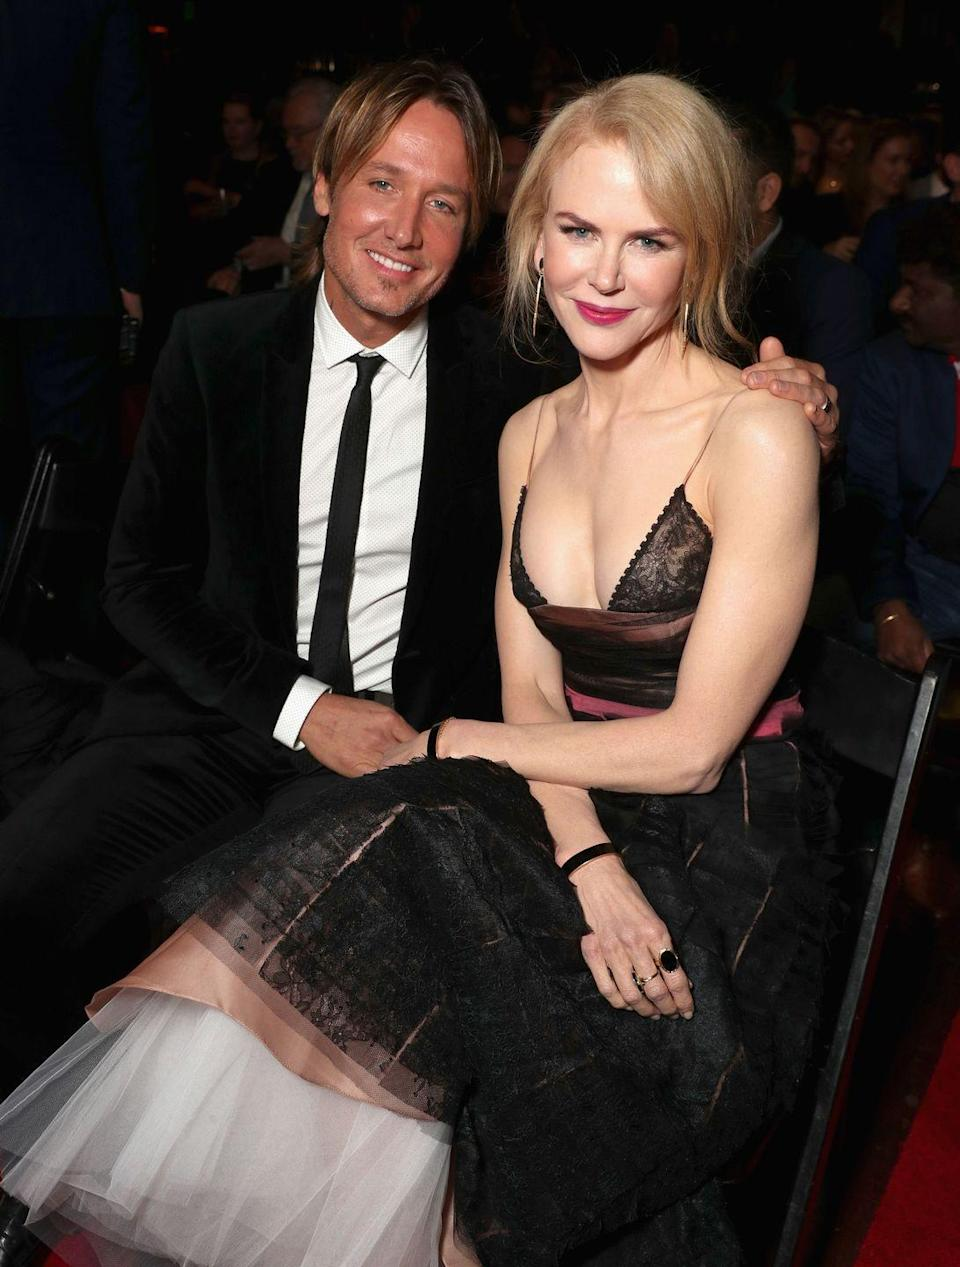 "<p>Nicole Kidman and Keith Urban <a href=""http://people.com/celebrity/nicole-keith-say-i-do/"" rel=""nofollow noopener"" target=""_blank"" data-ylk=""slk:wed in June 2006"" class=""link rapid-noclick-resp"">wed in June 2006</a> in a candle-lit ceremony at Sydney, Australia's Cardinal Cerretti Memorial Chapel. Kidman wore a Balenciaga gown, and guests included Naomi Watts and Hugh Jackman. </p>"